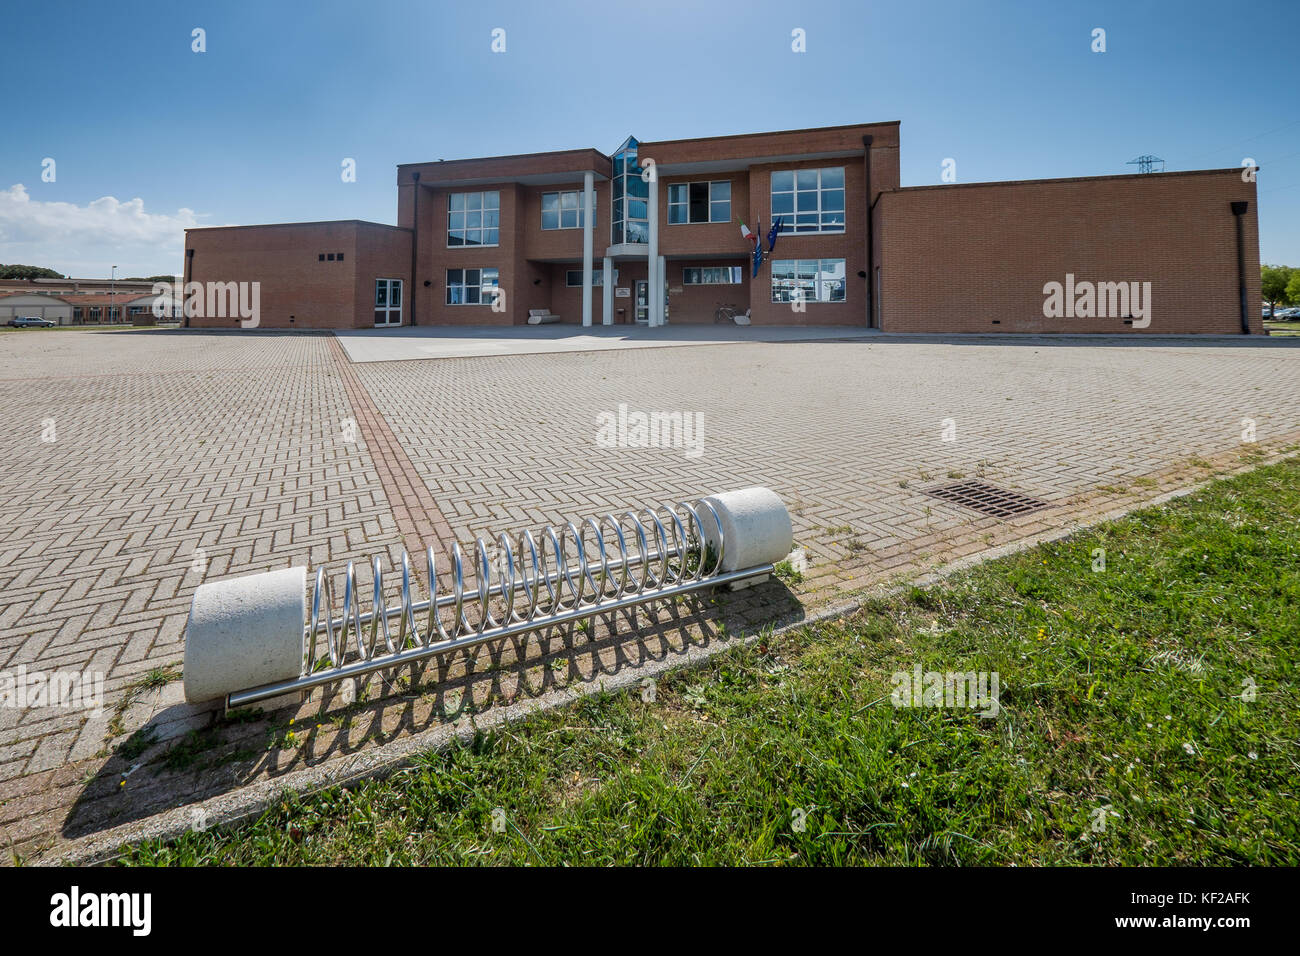 Cecina, Leghorn, Tuscany - the new headquarters of the town of Cecina, former court of the court of peace - Stock Image